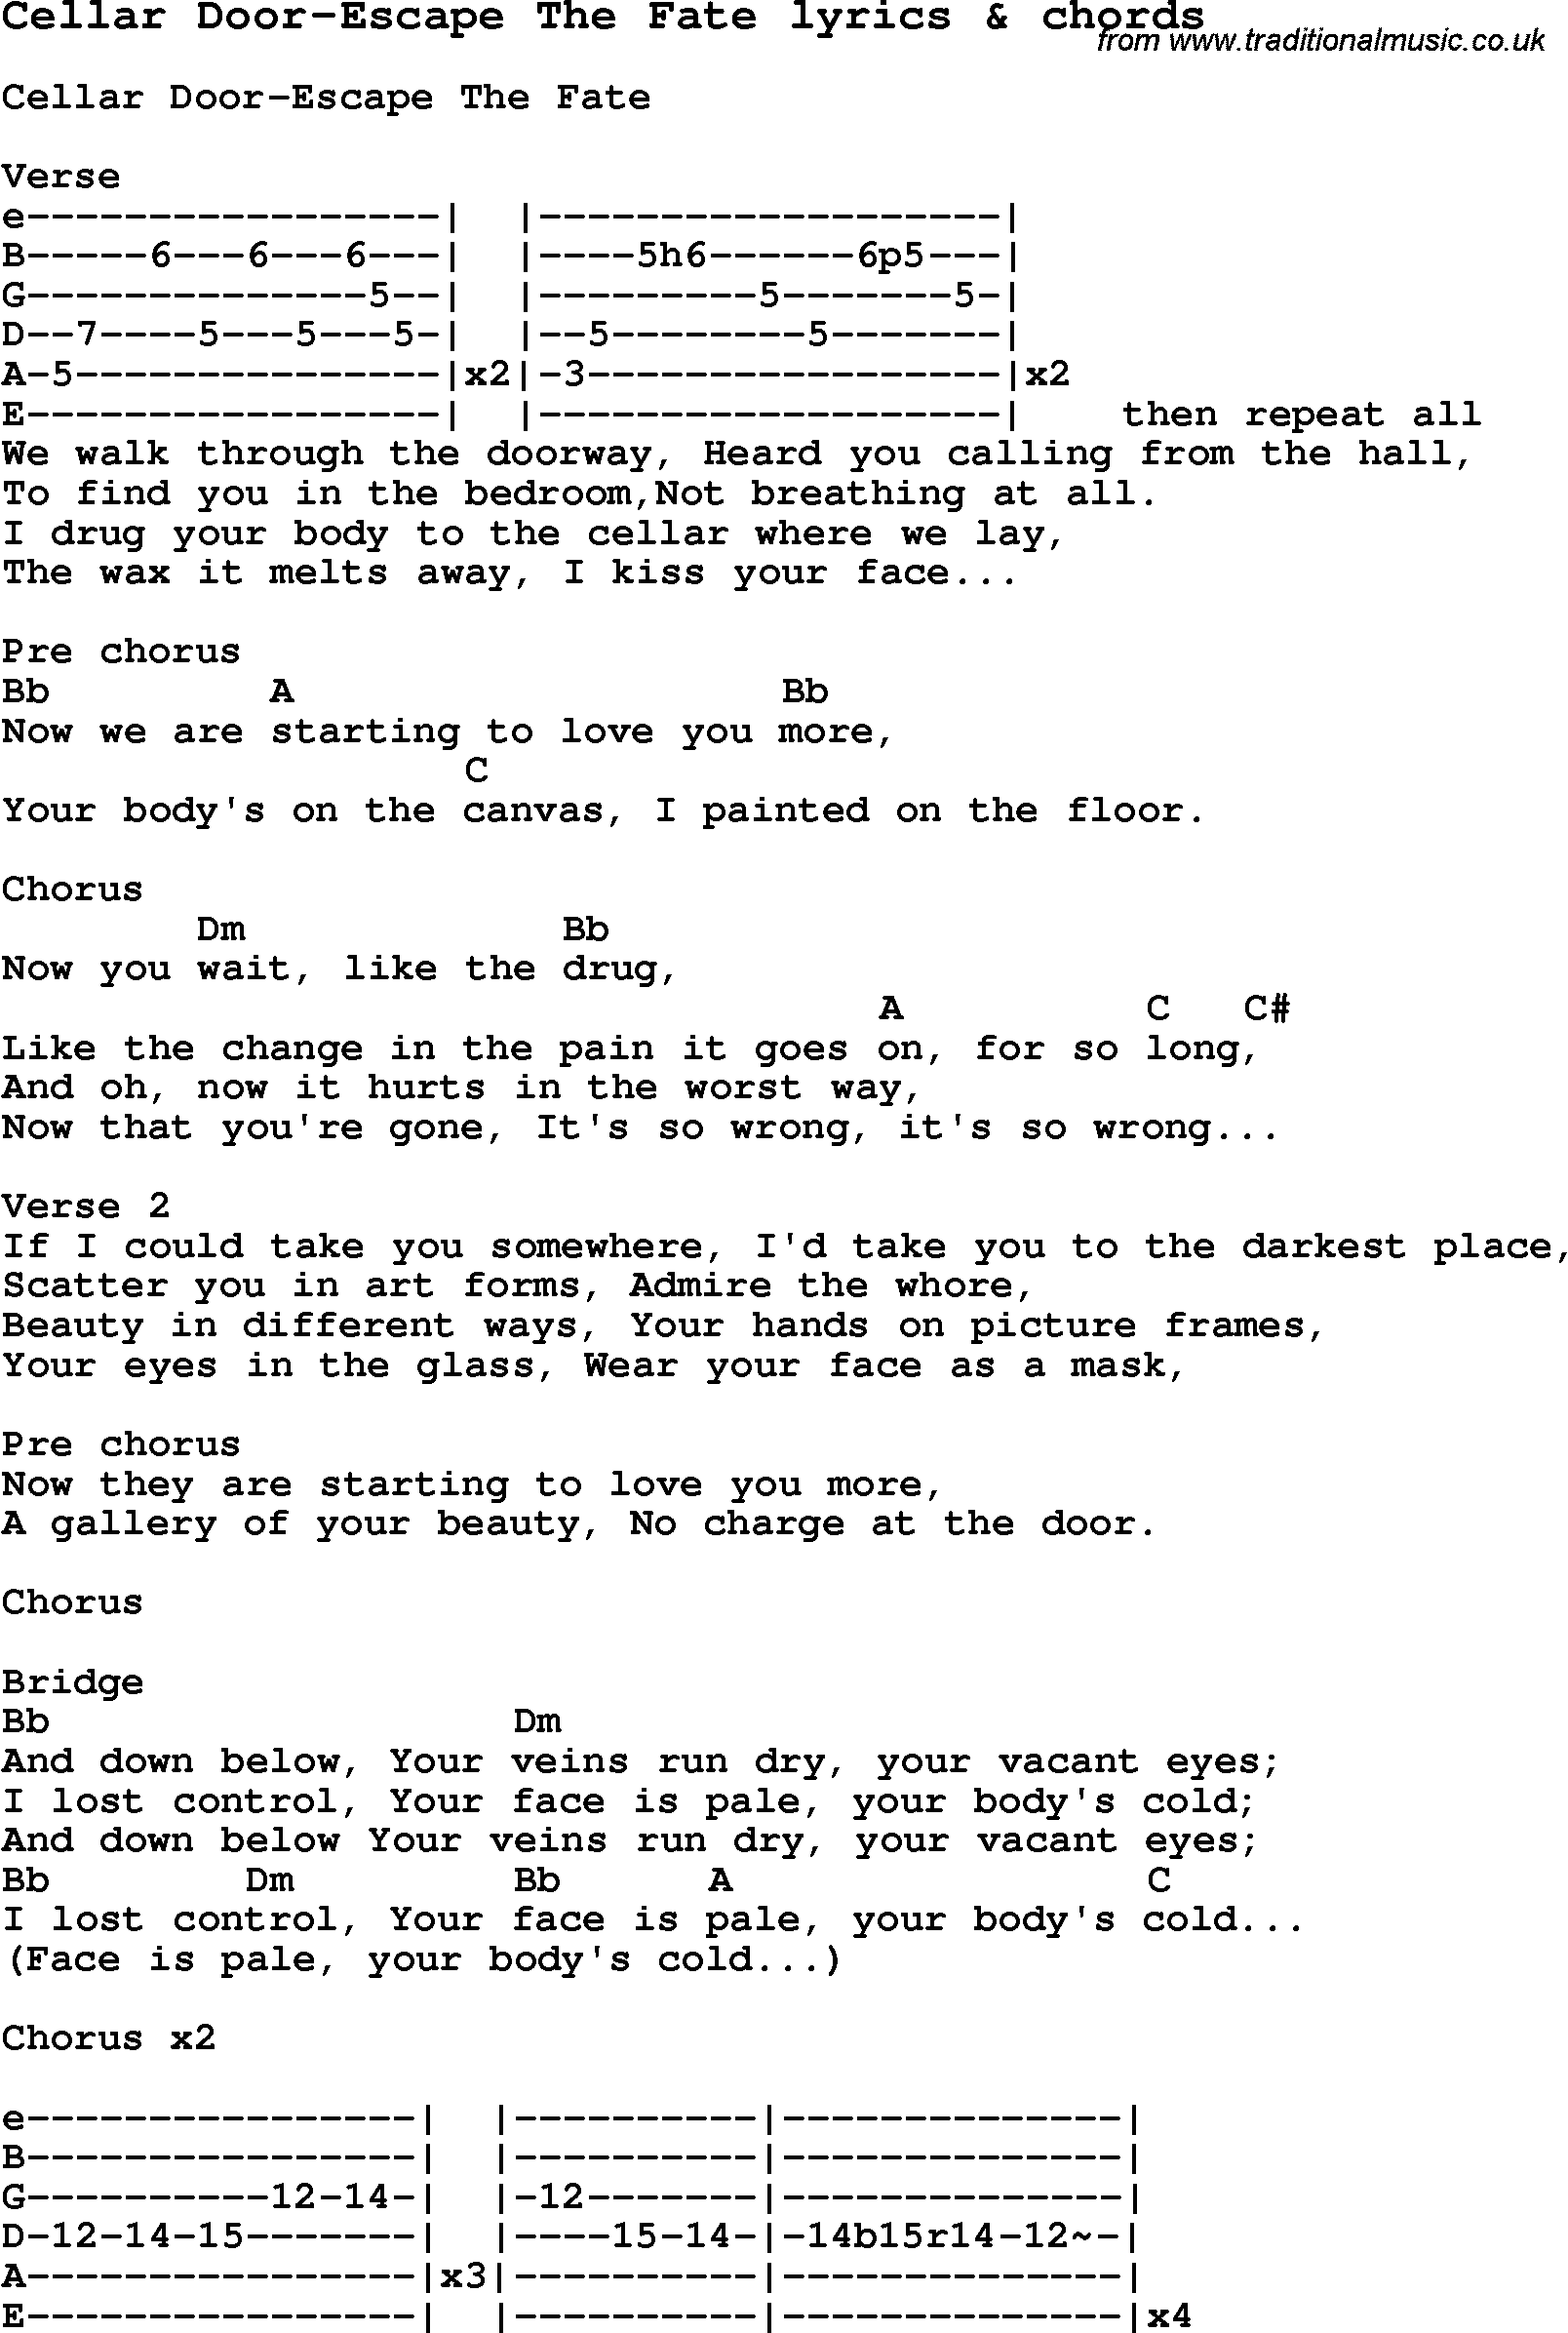 Love Song Lyrics forCellar Door Escape The Fate with chords.